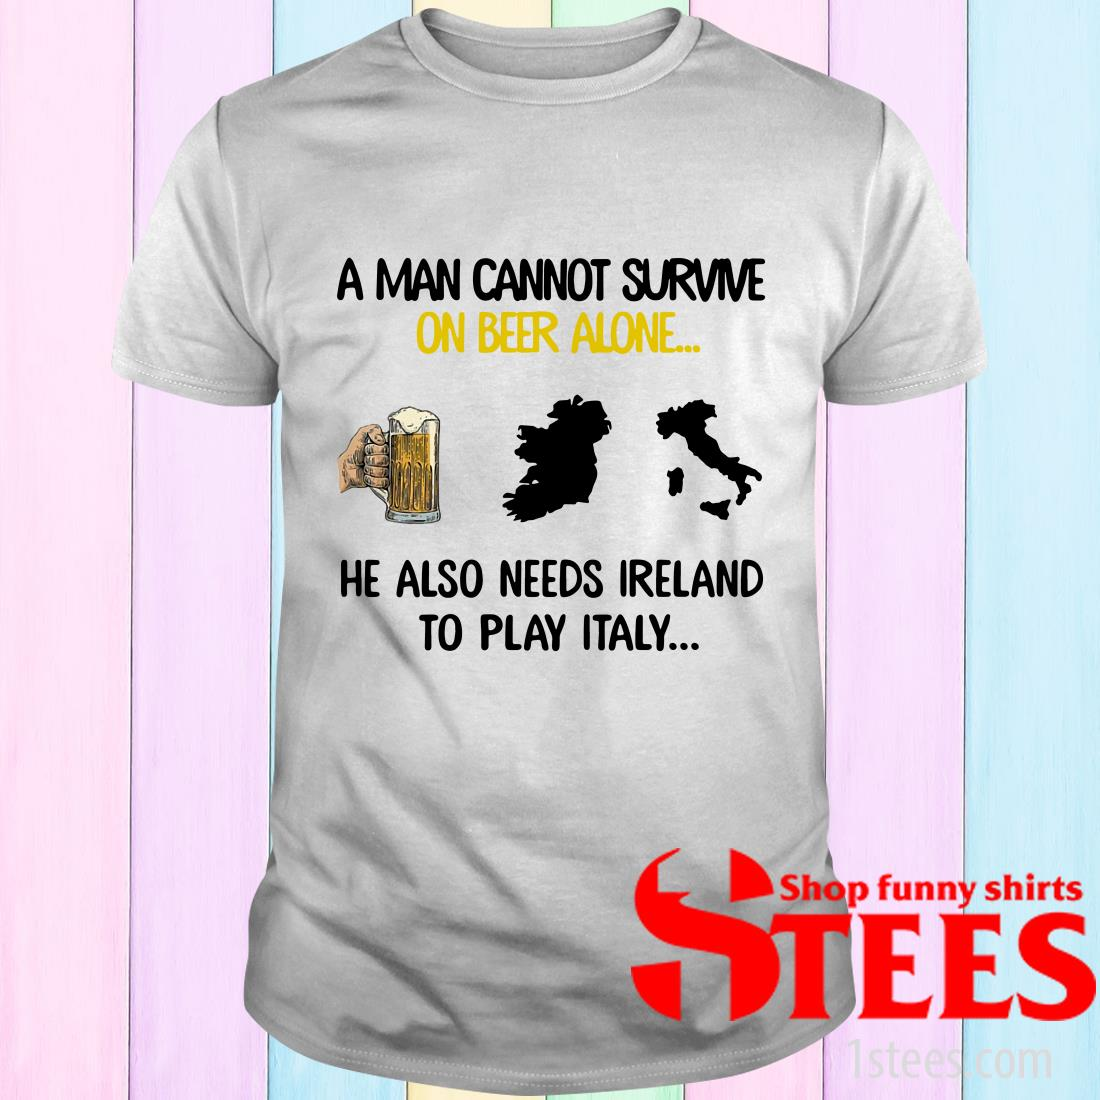 A Man Cannot Survive On Beer Alone He Also Needs Ireland To Play Italy T-Shirt